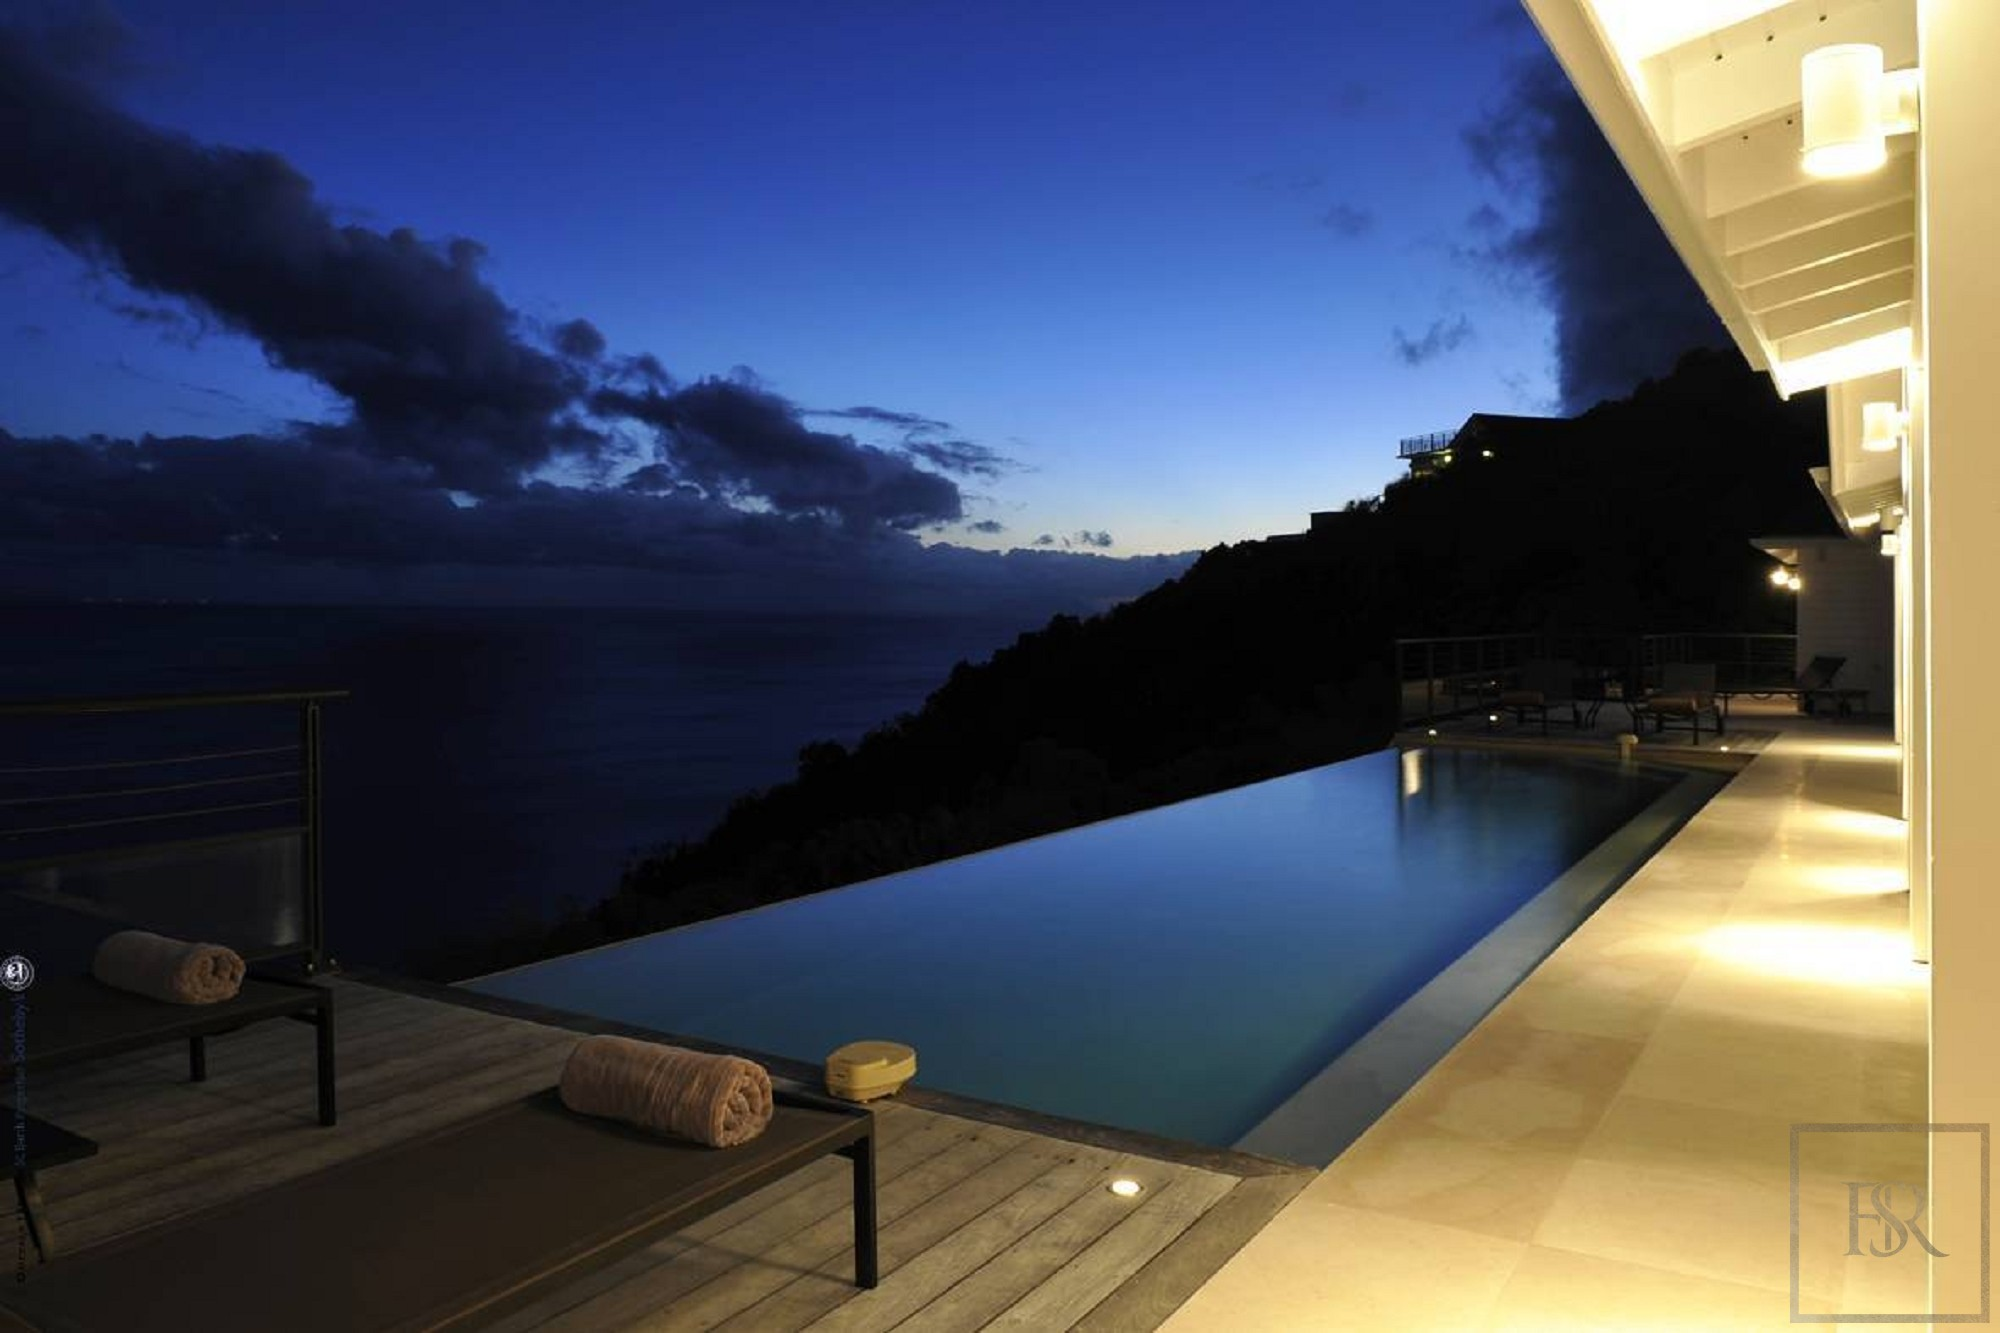 Villa The View 4 BR - Colombier, St Barth / St Barts rental For Super Rich